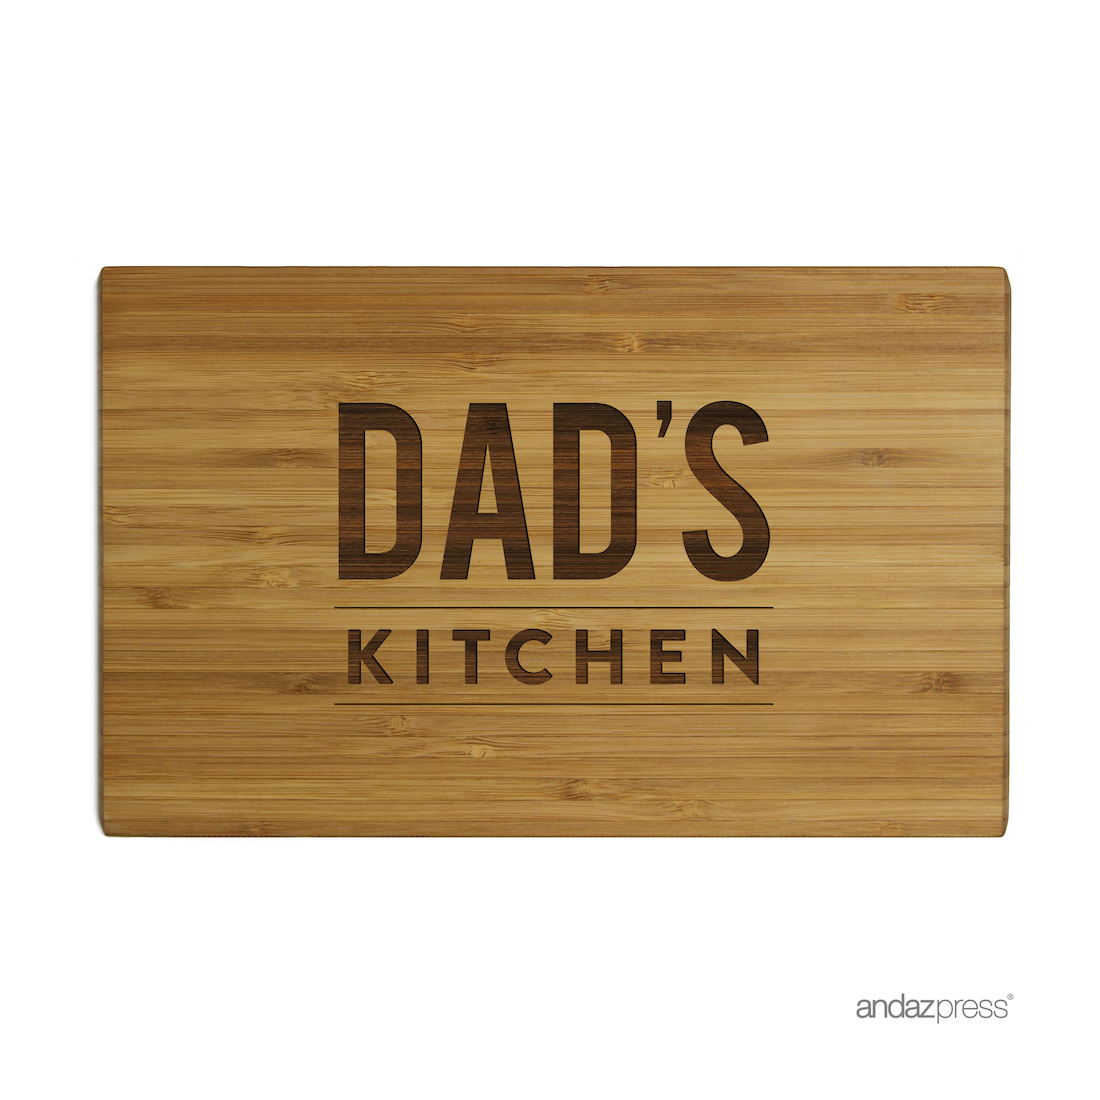 Andaz Press Laser Engraved Small Bamboo Wood Cutting Board, 9.5 x 6-inch, Dad's Kitchen, 1-Pack by